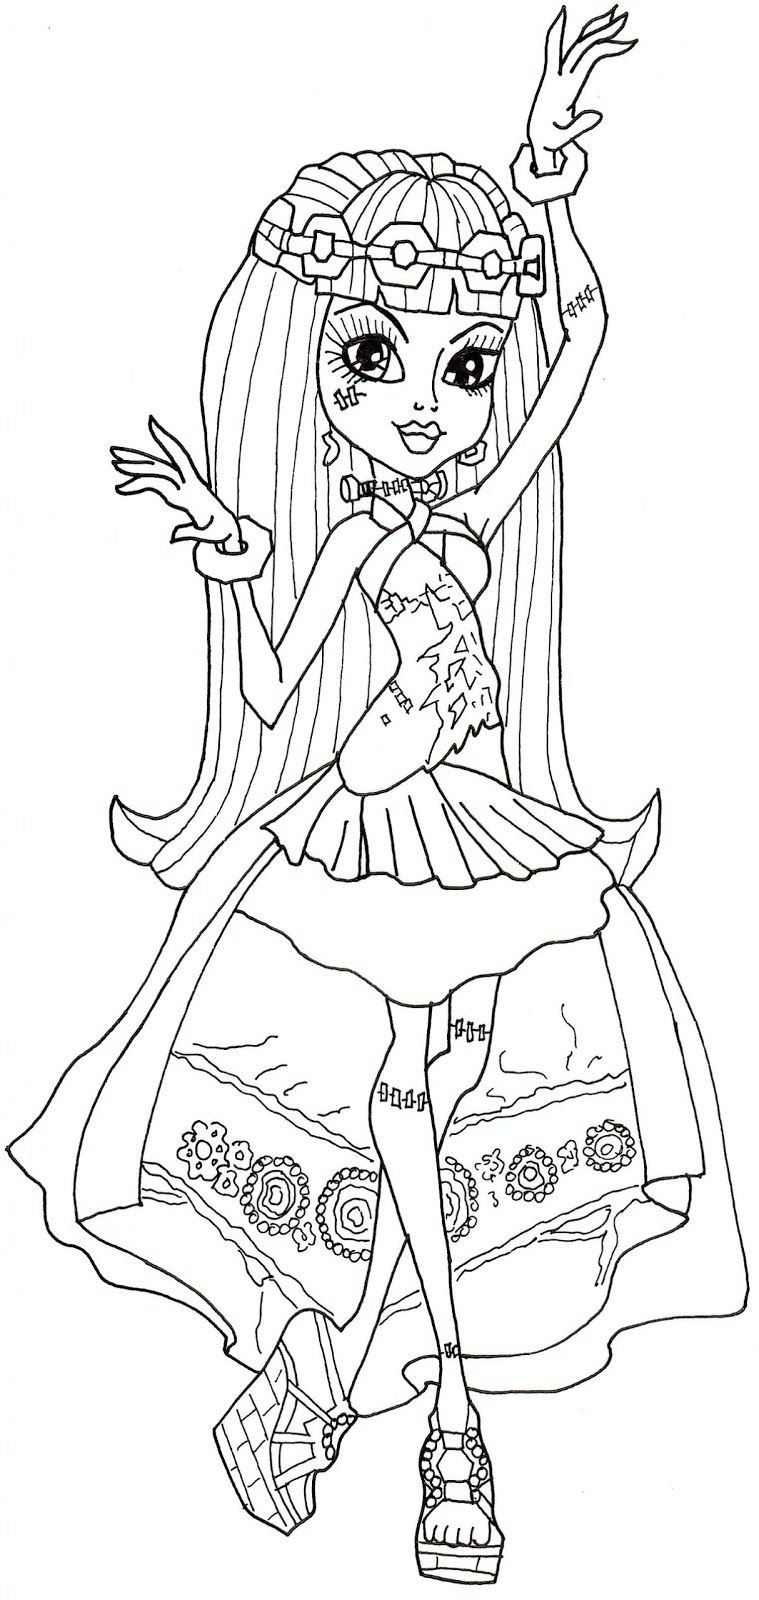 Malvorlagen Monster High Genial Free Printable Monster High Coloring Pages Frankie Stein 13 Wishes Fotos